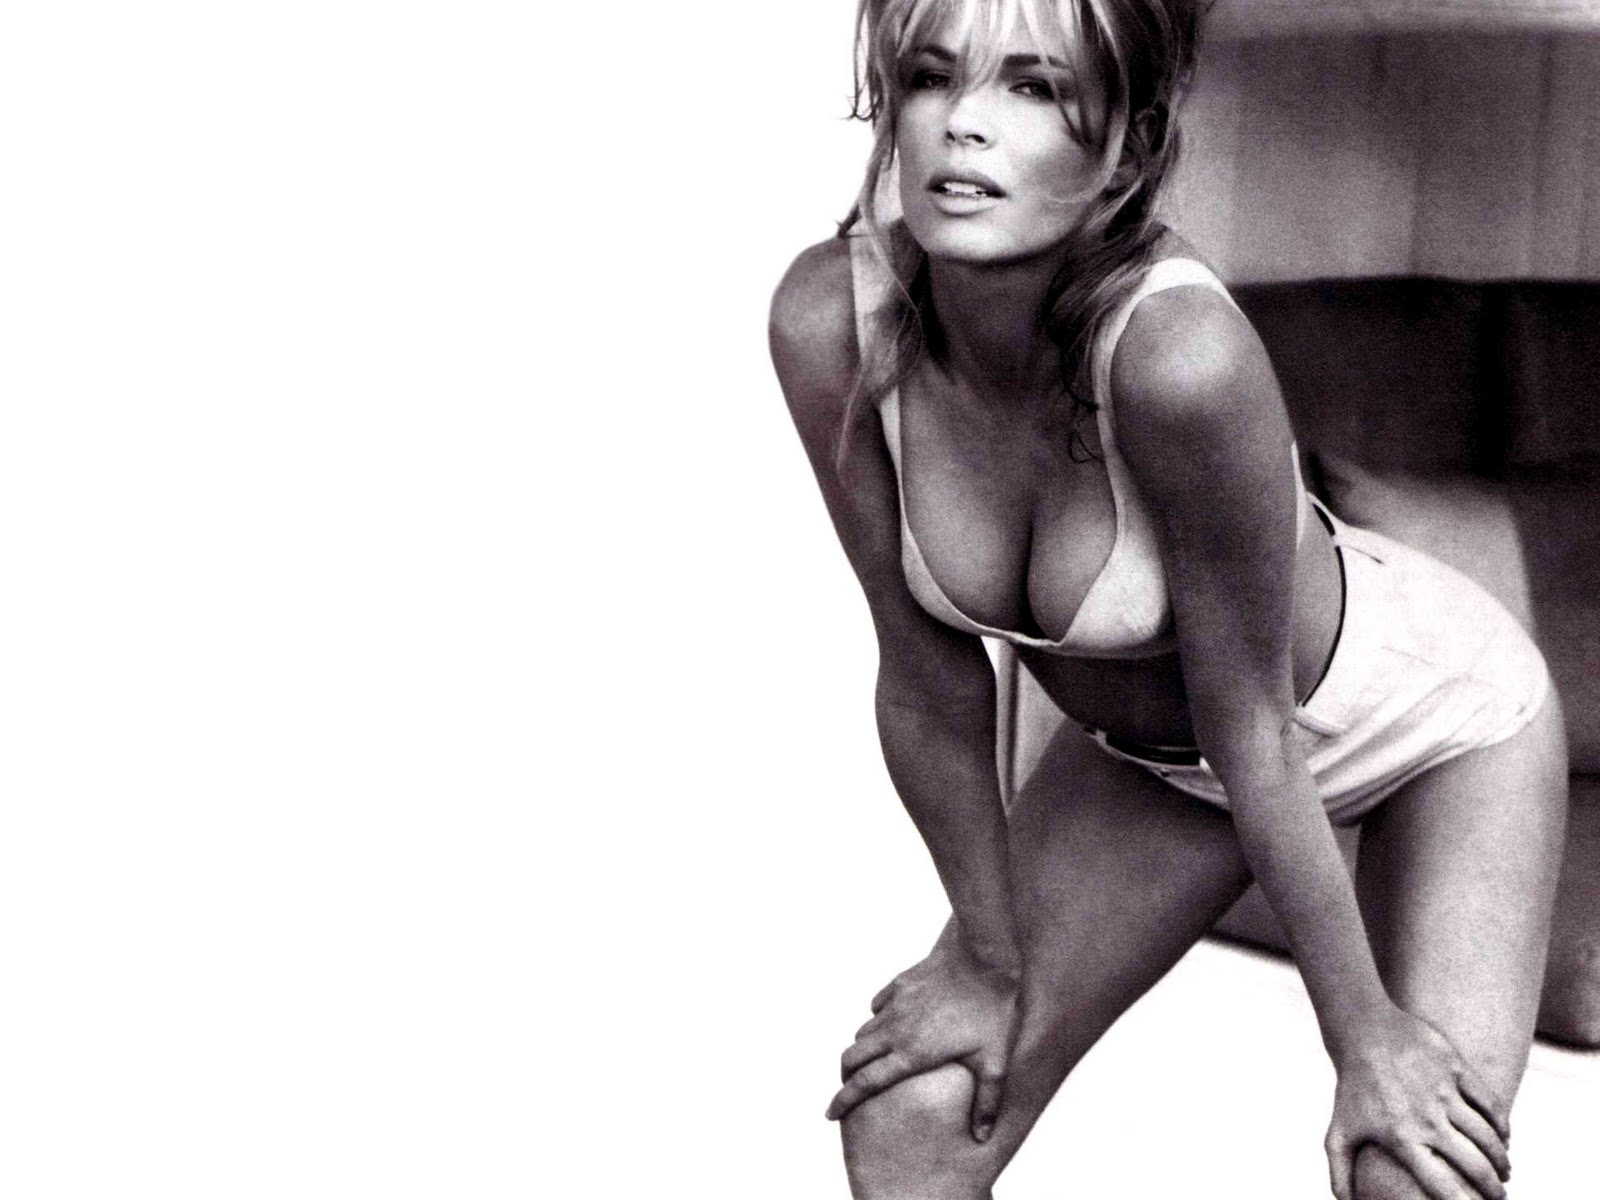 Consider, kim basinger images hot are